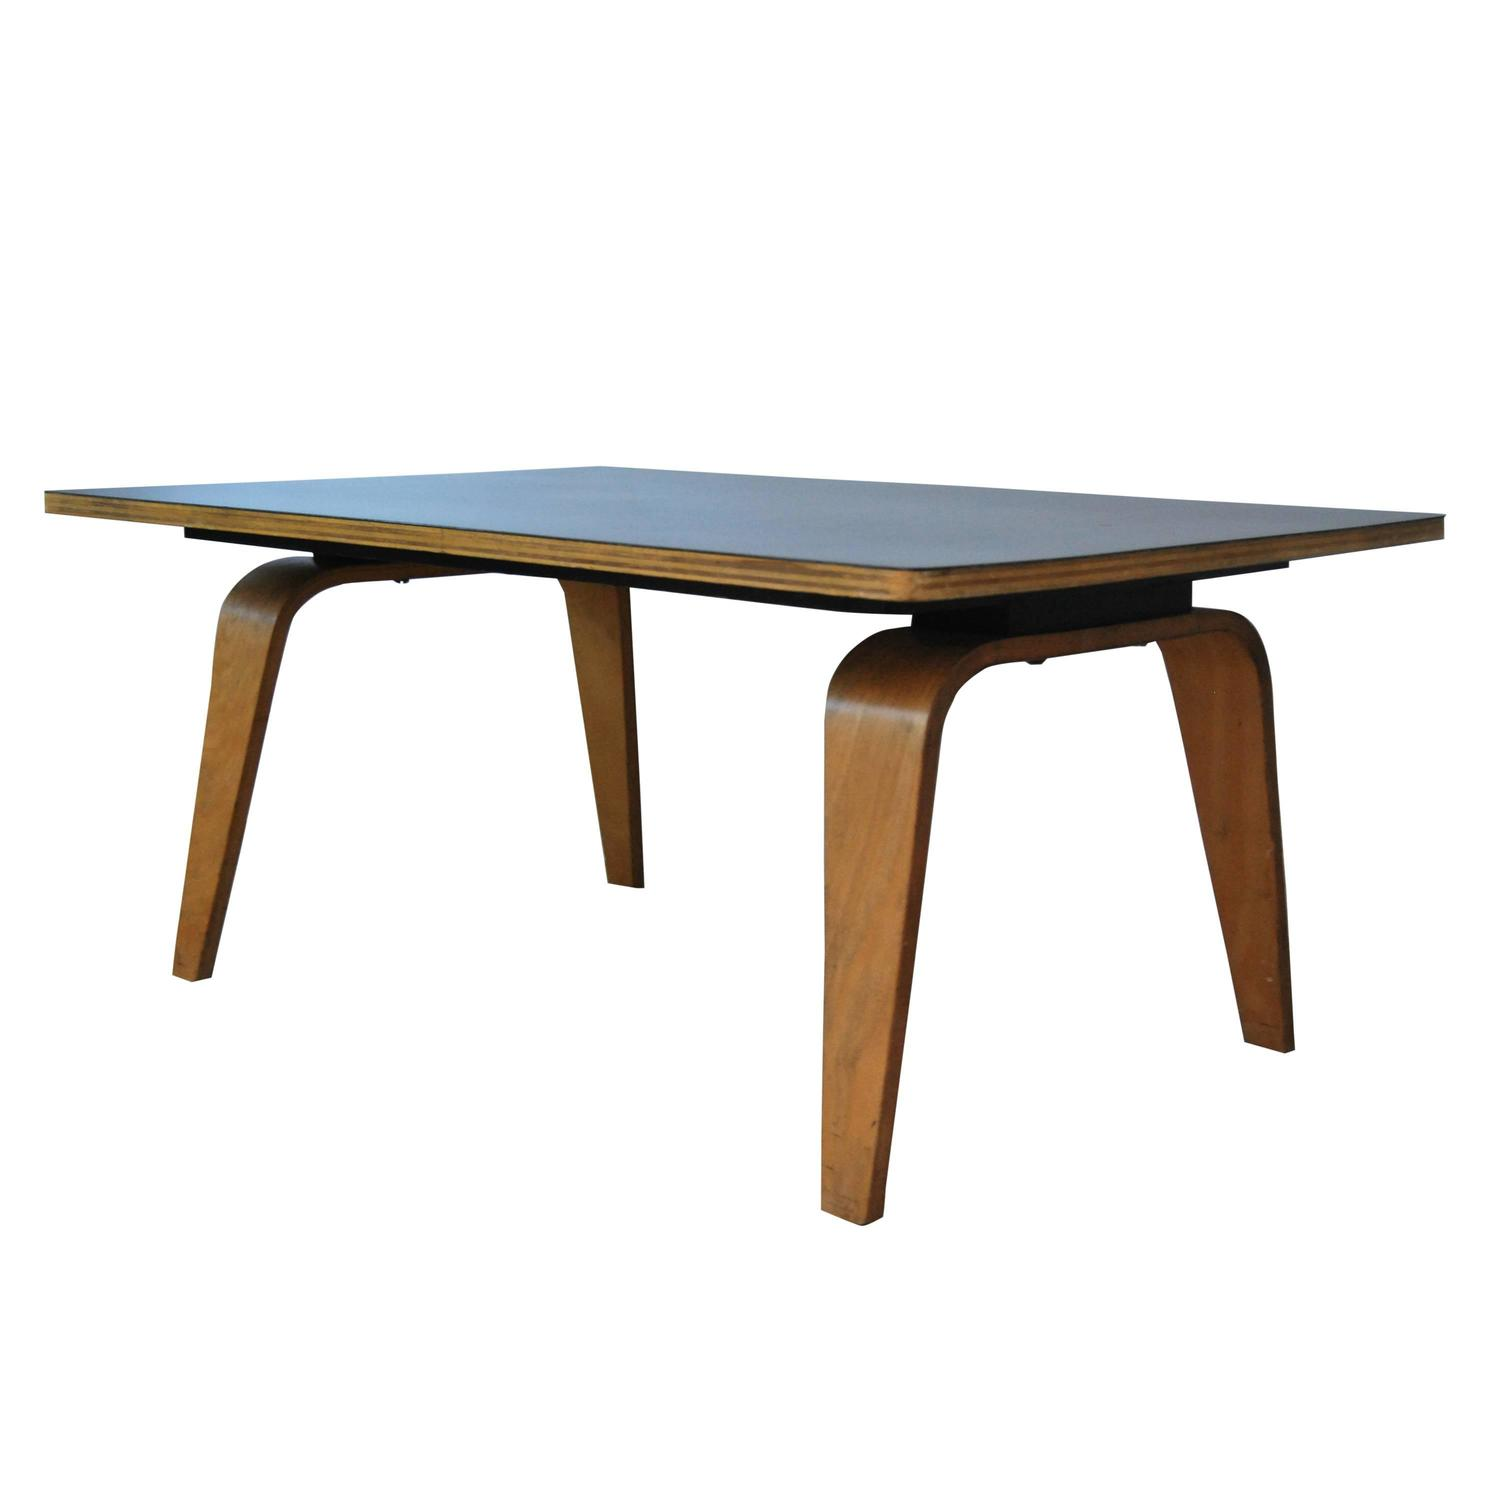 Early Eames OTW Coffee Table circa 1946 For Sale at 1stdibs